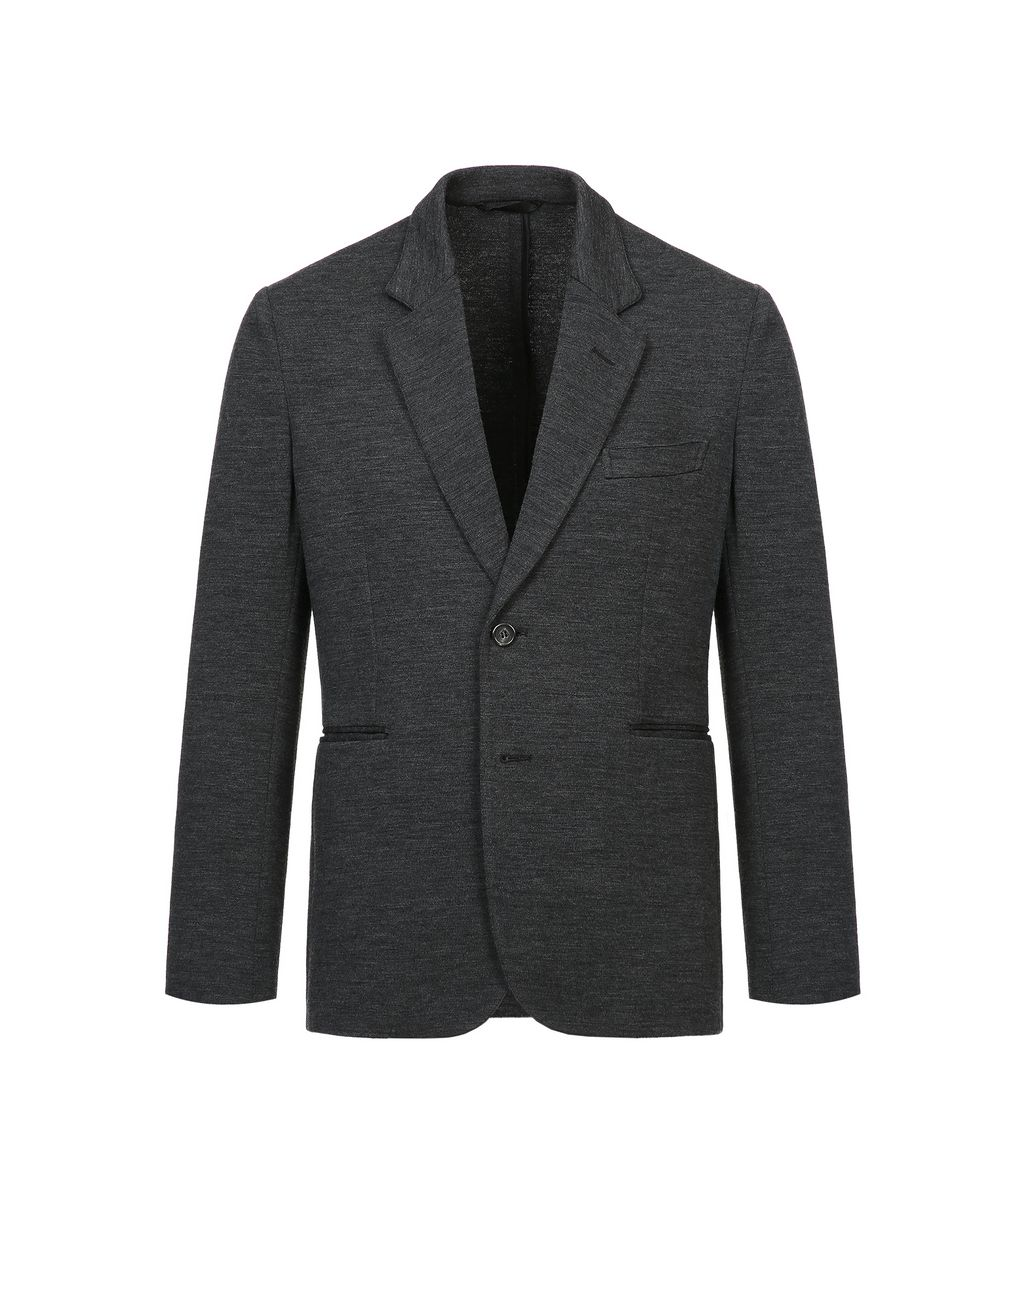 BRIONI Antrachite Gray Jersey Jacket Jackets Man f